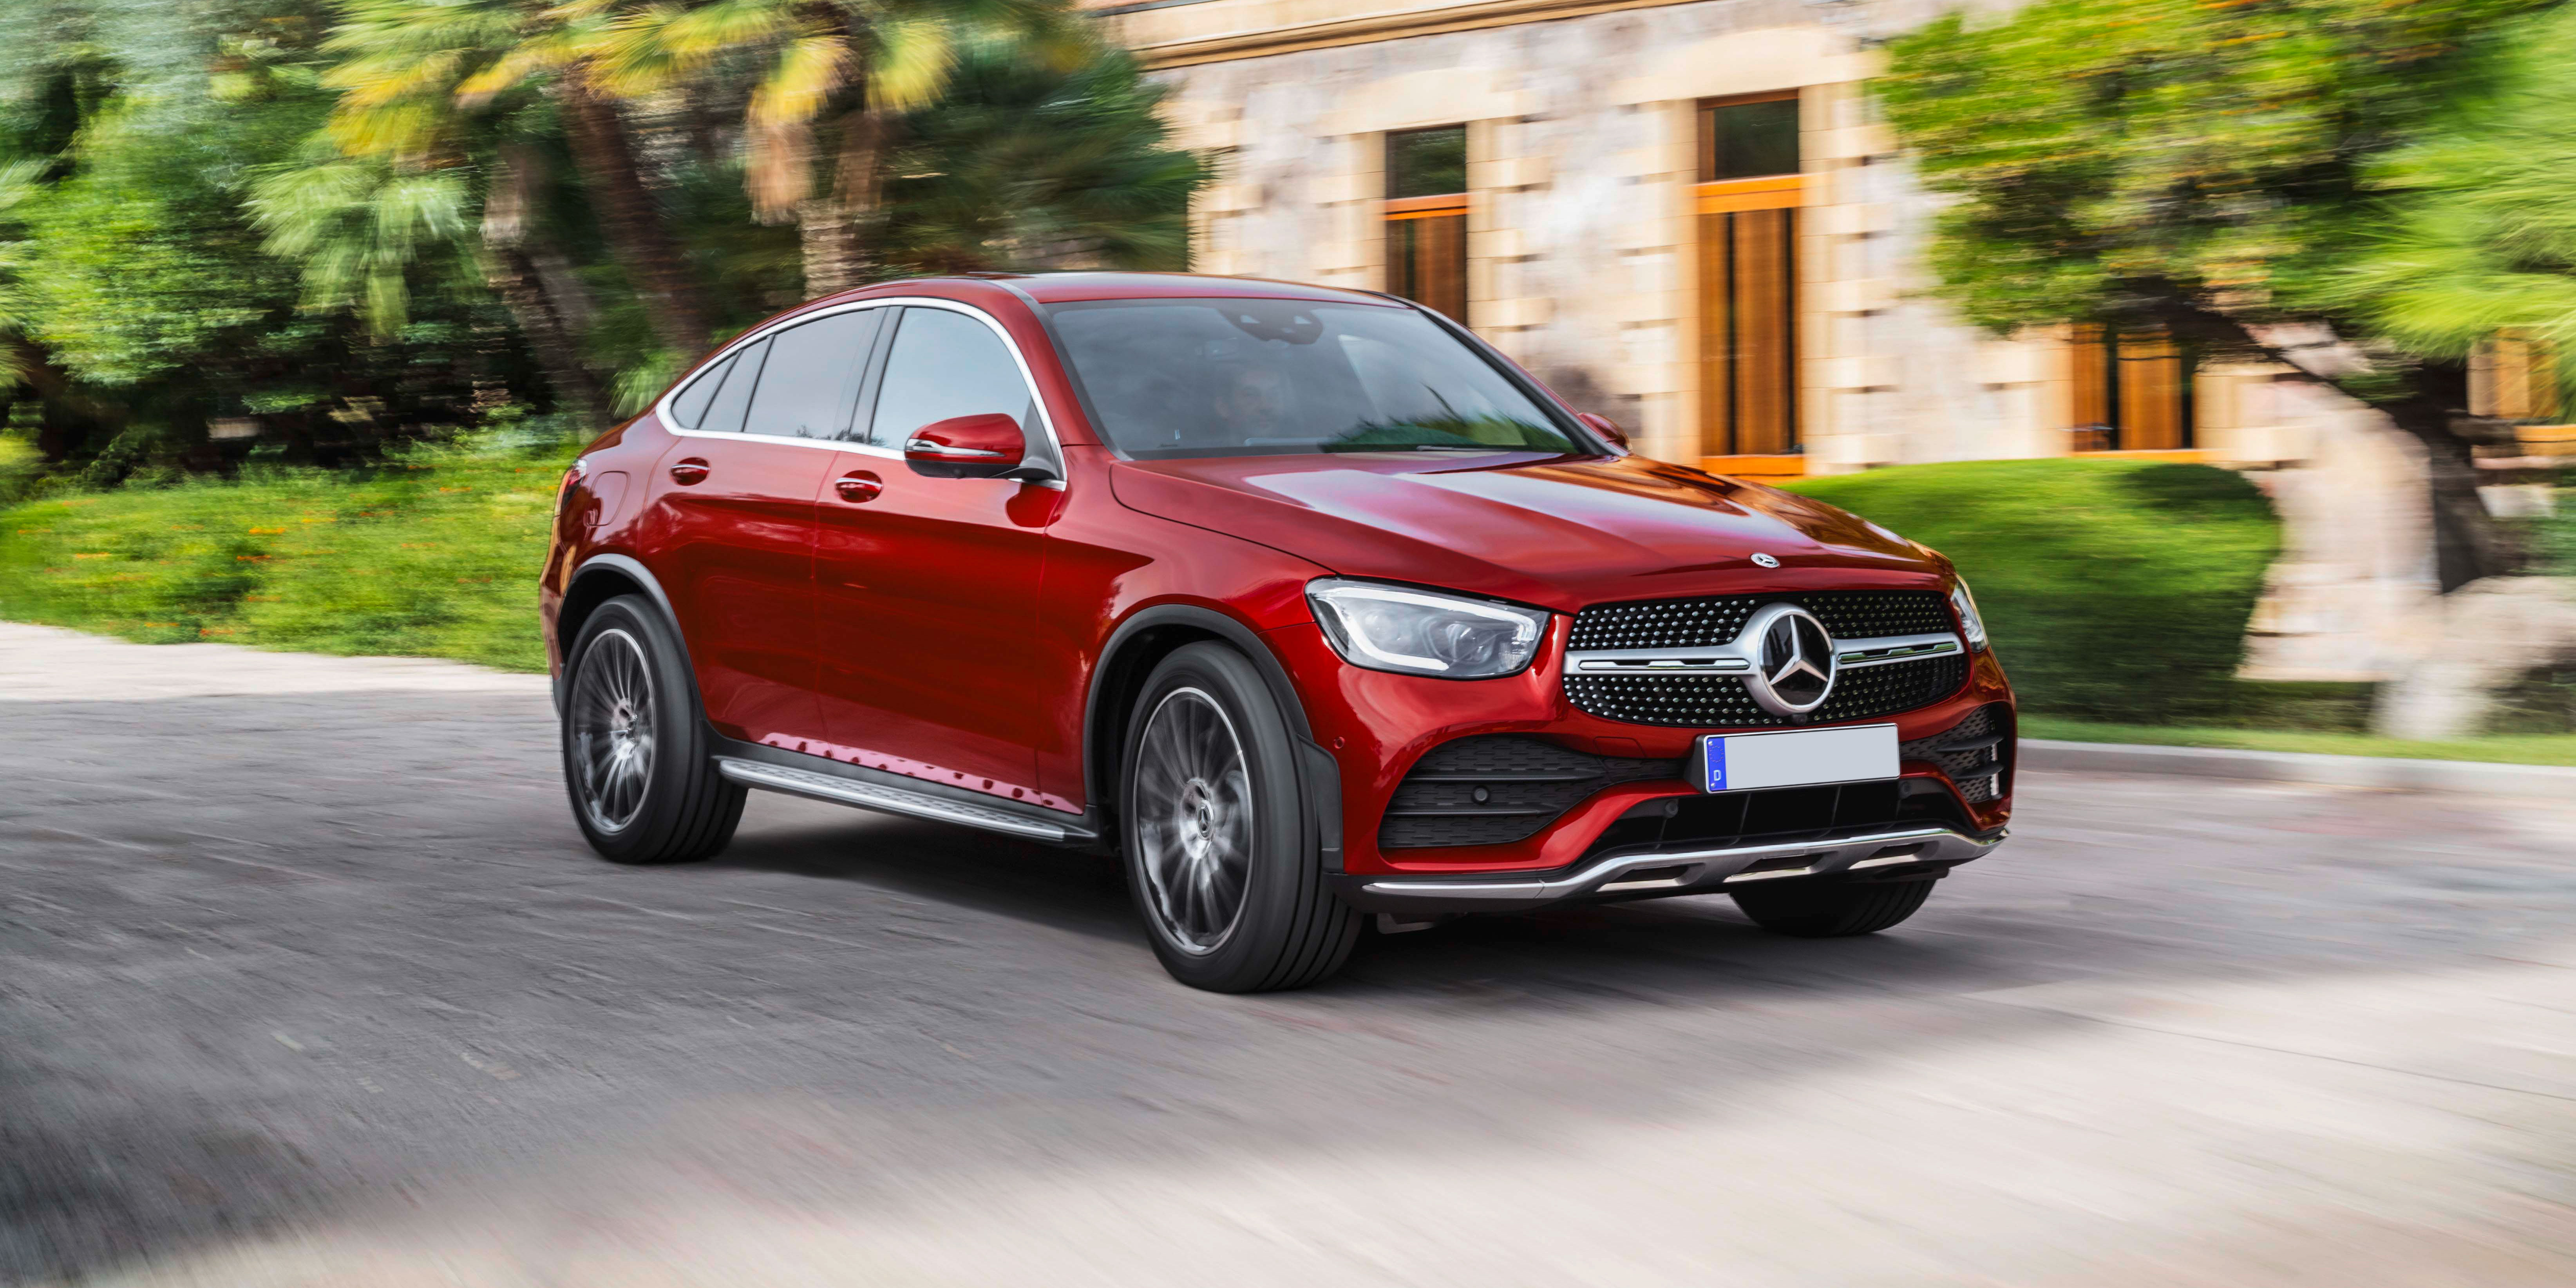 Mercedes Glc Coupe Specifications Prices Carwow